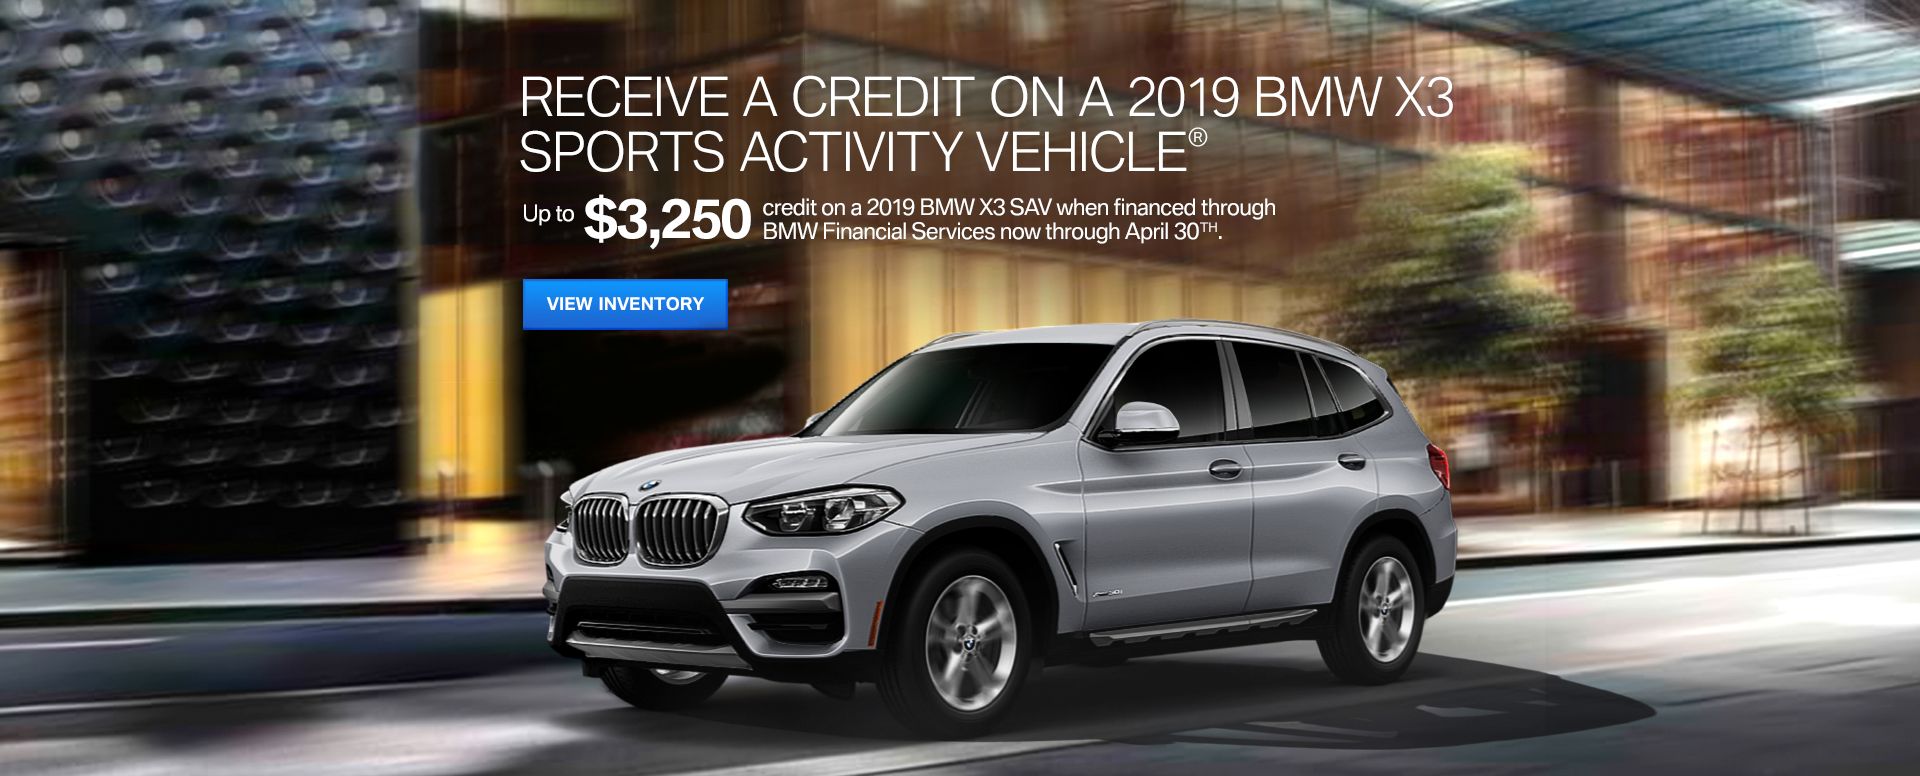 Bmw Dealer In Suitland Md Used Cars Suitland Passport Bmw